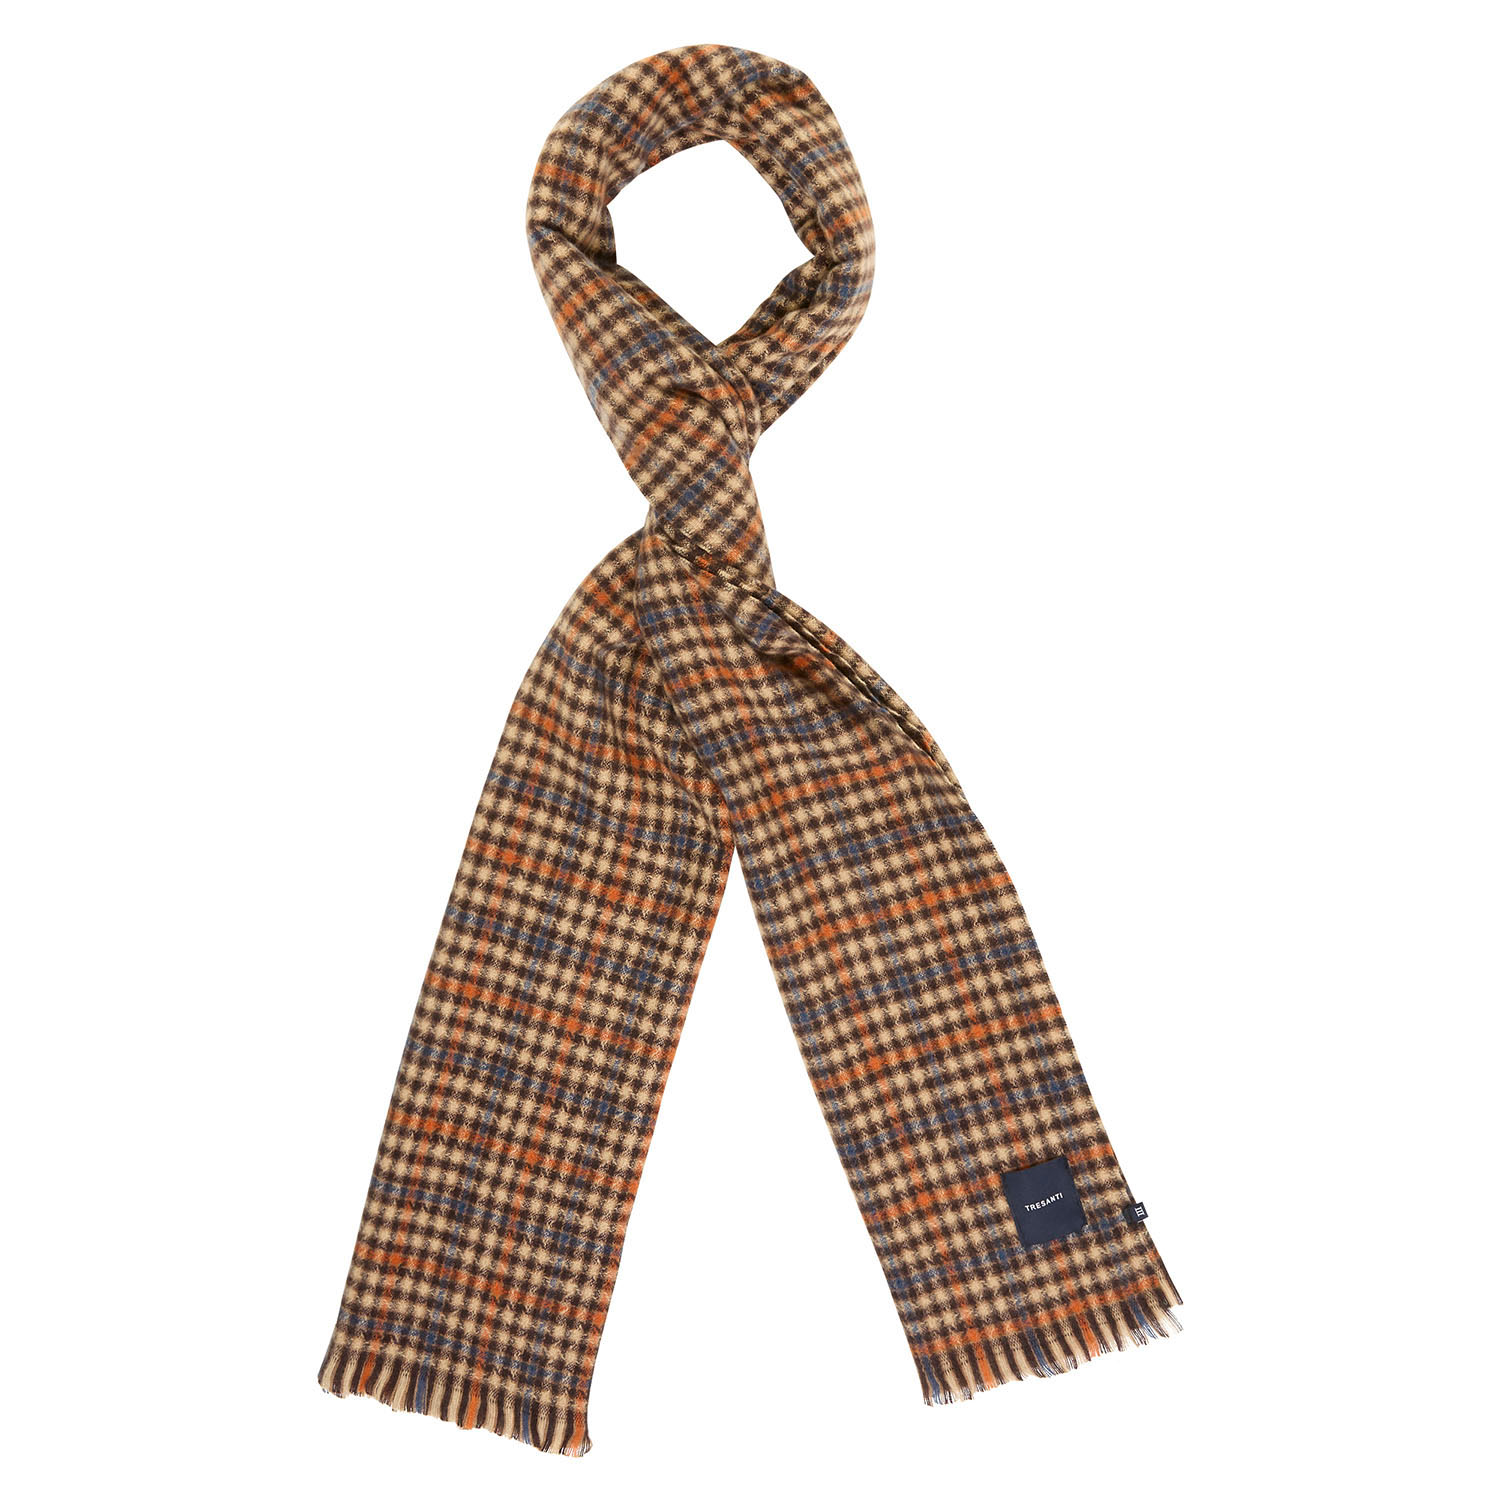 EDLIN | Checked scarf in beige with tints of blue and orange